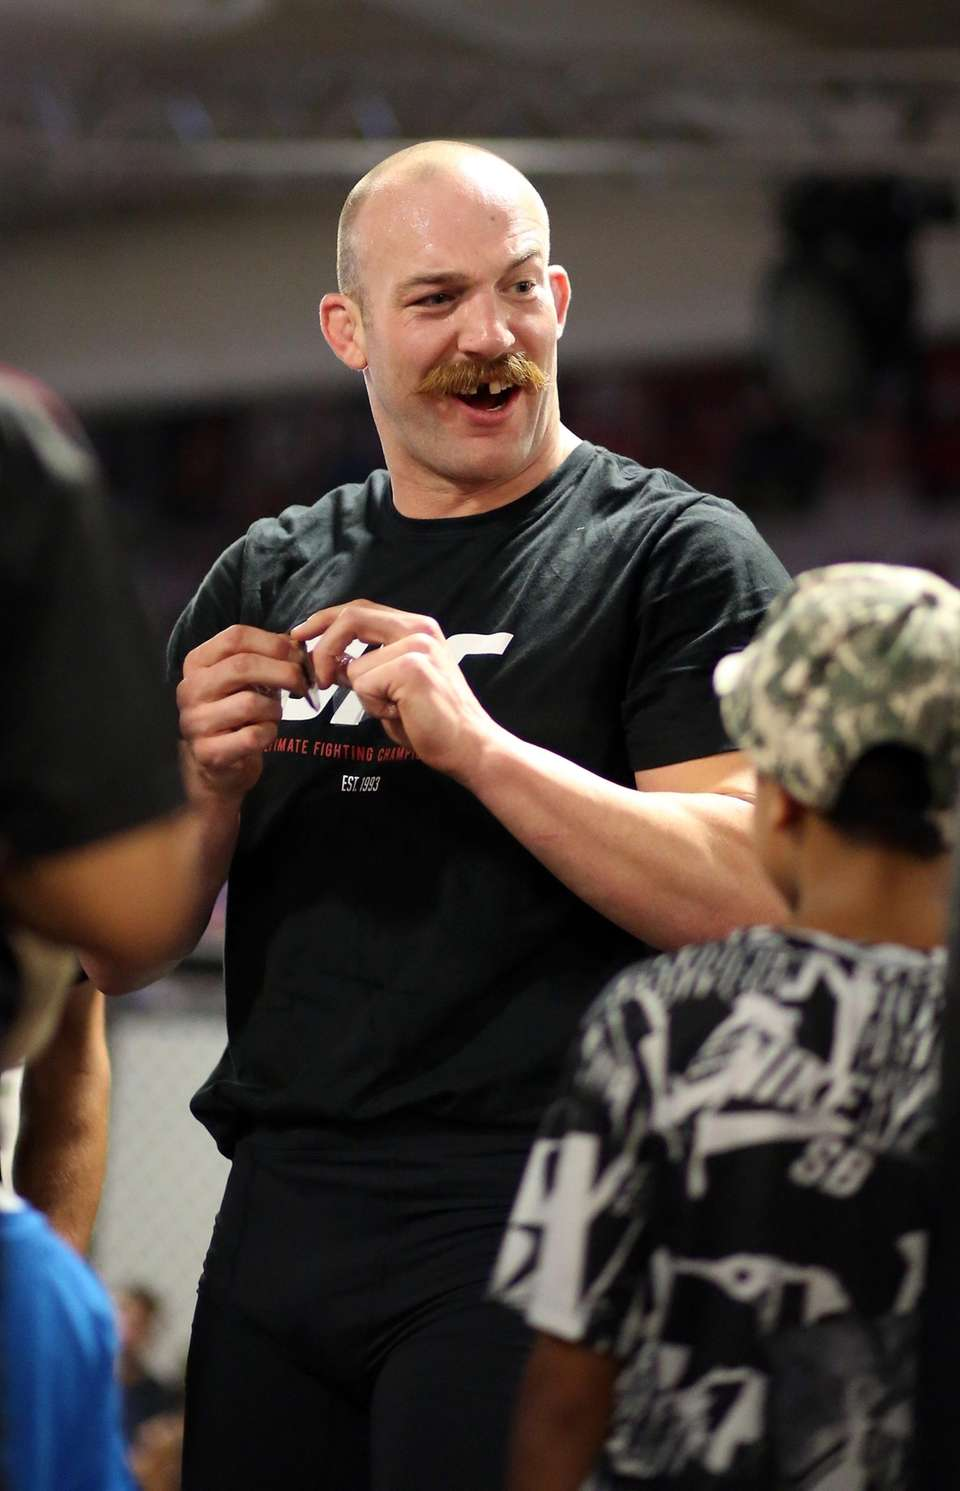 Patrick Cummins prepares for upcoming fight at the